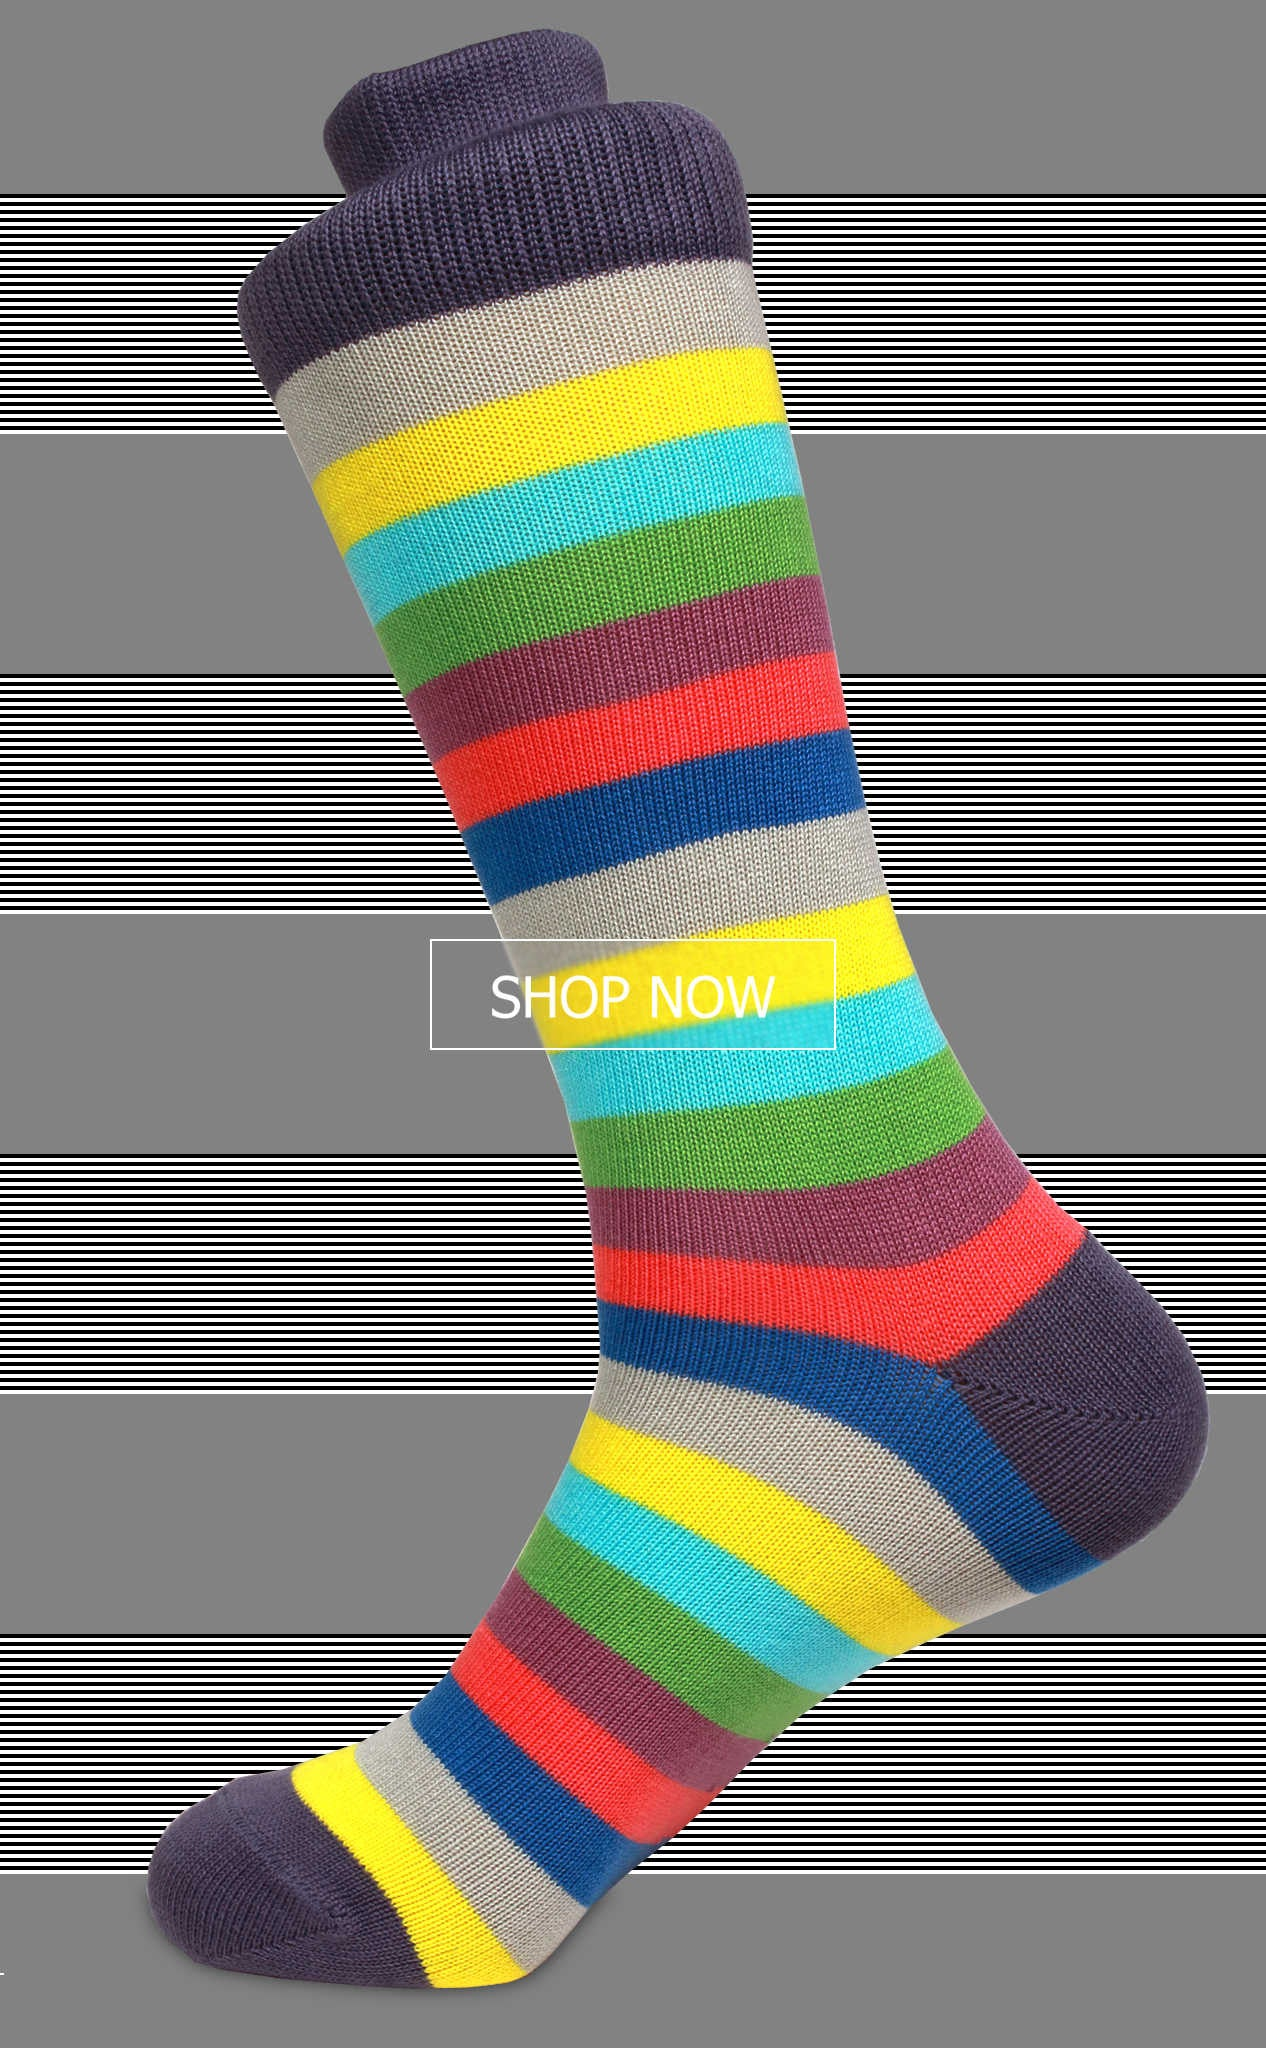 The best colorful Pima cotton socks you'll find!